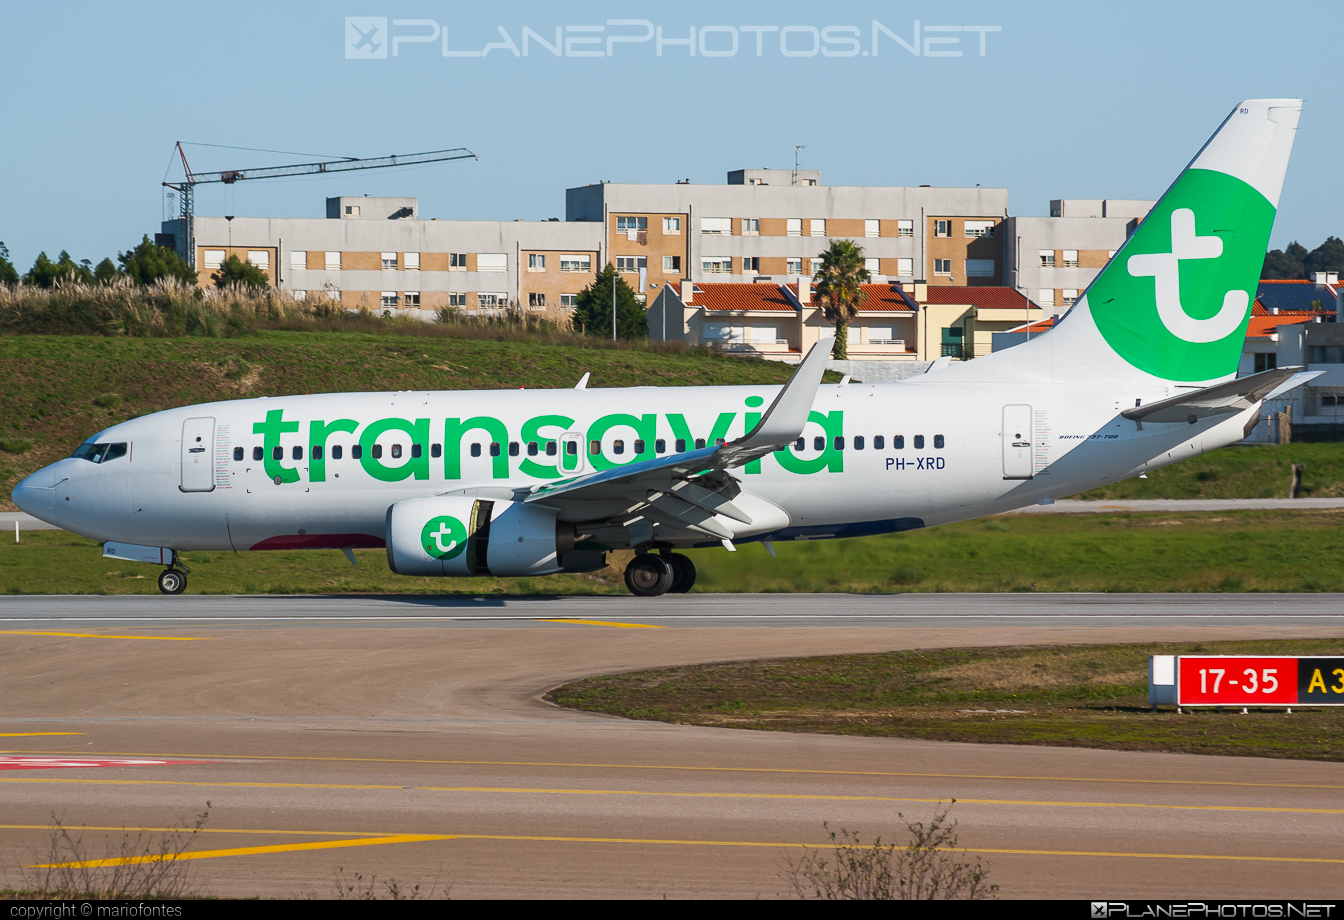 Boeing 737-700 - PH-XRD operated by Transavia Airlines #b737 #b737nextgen #b737ng #boeing #boeing737 #transavia #transaviaairlines